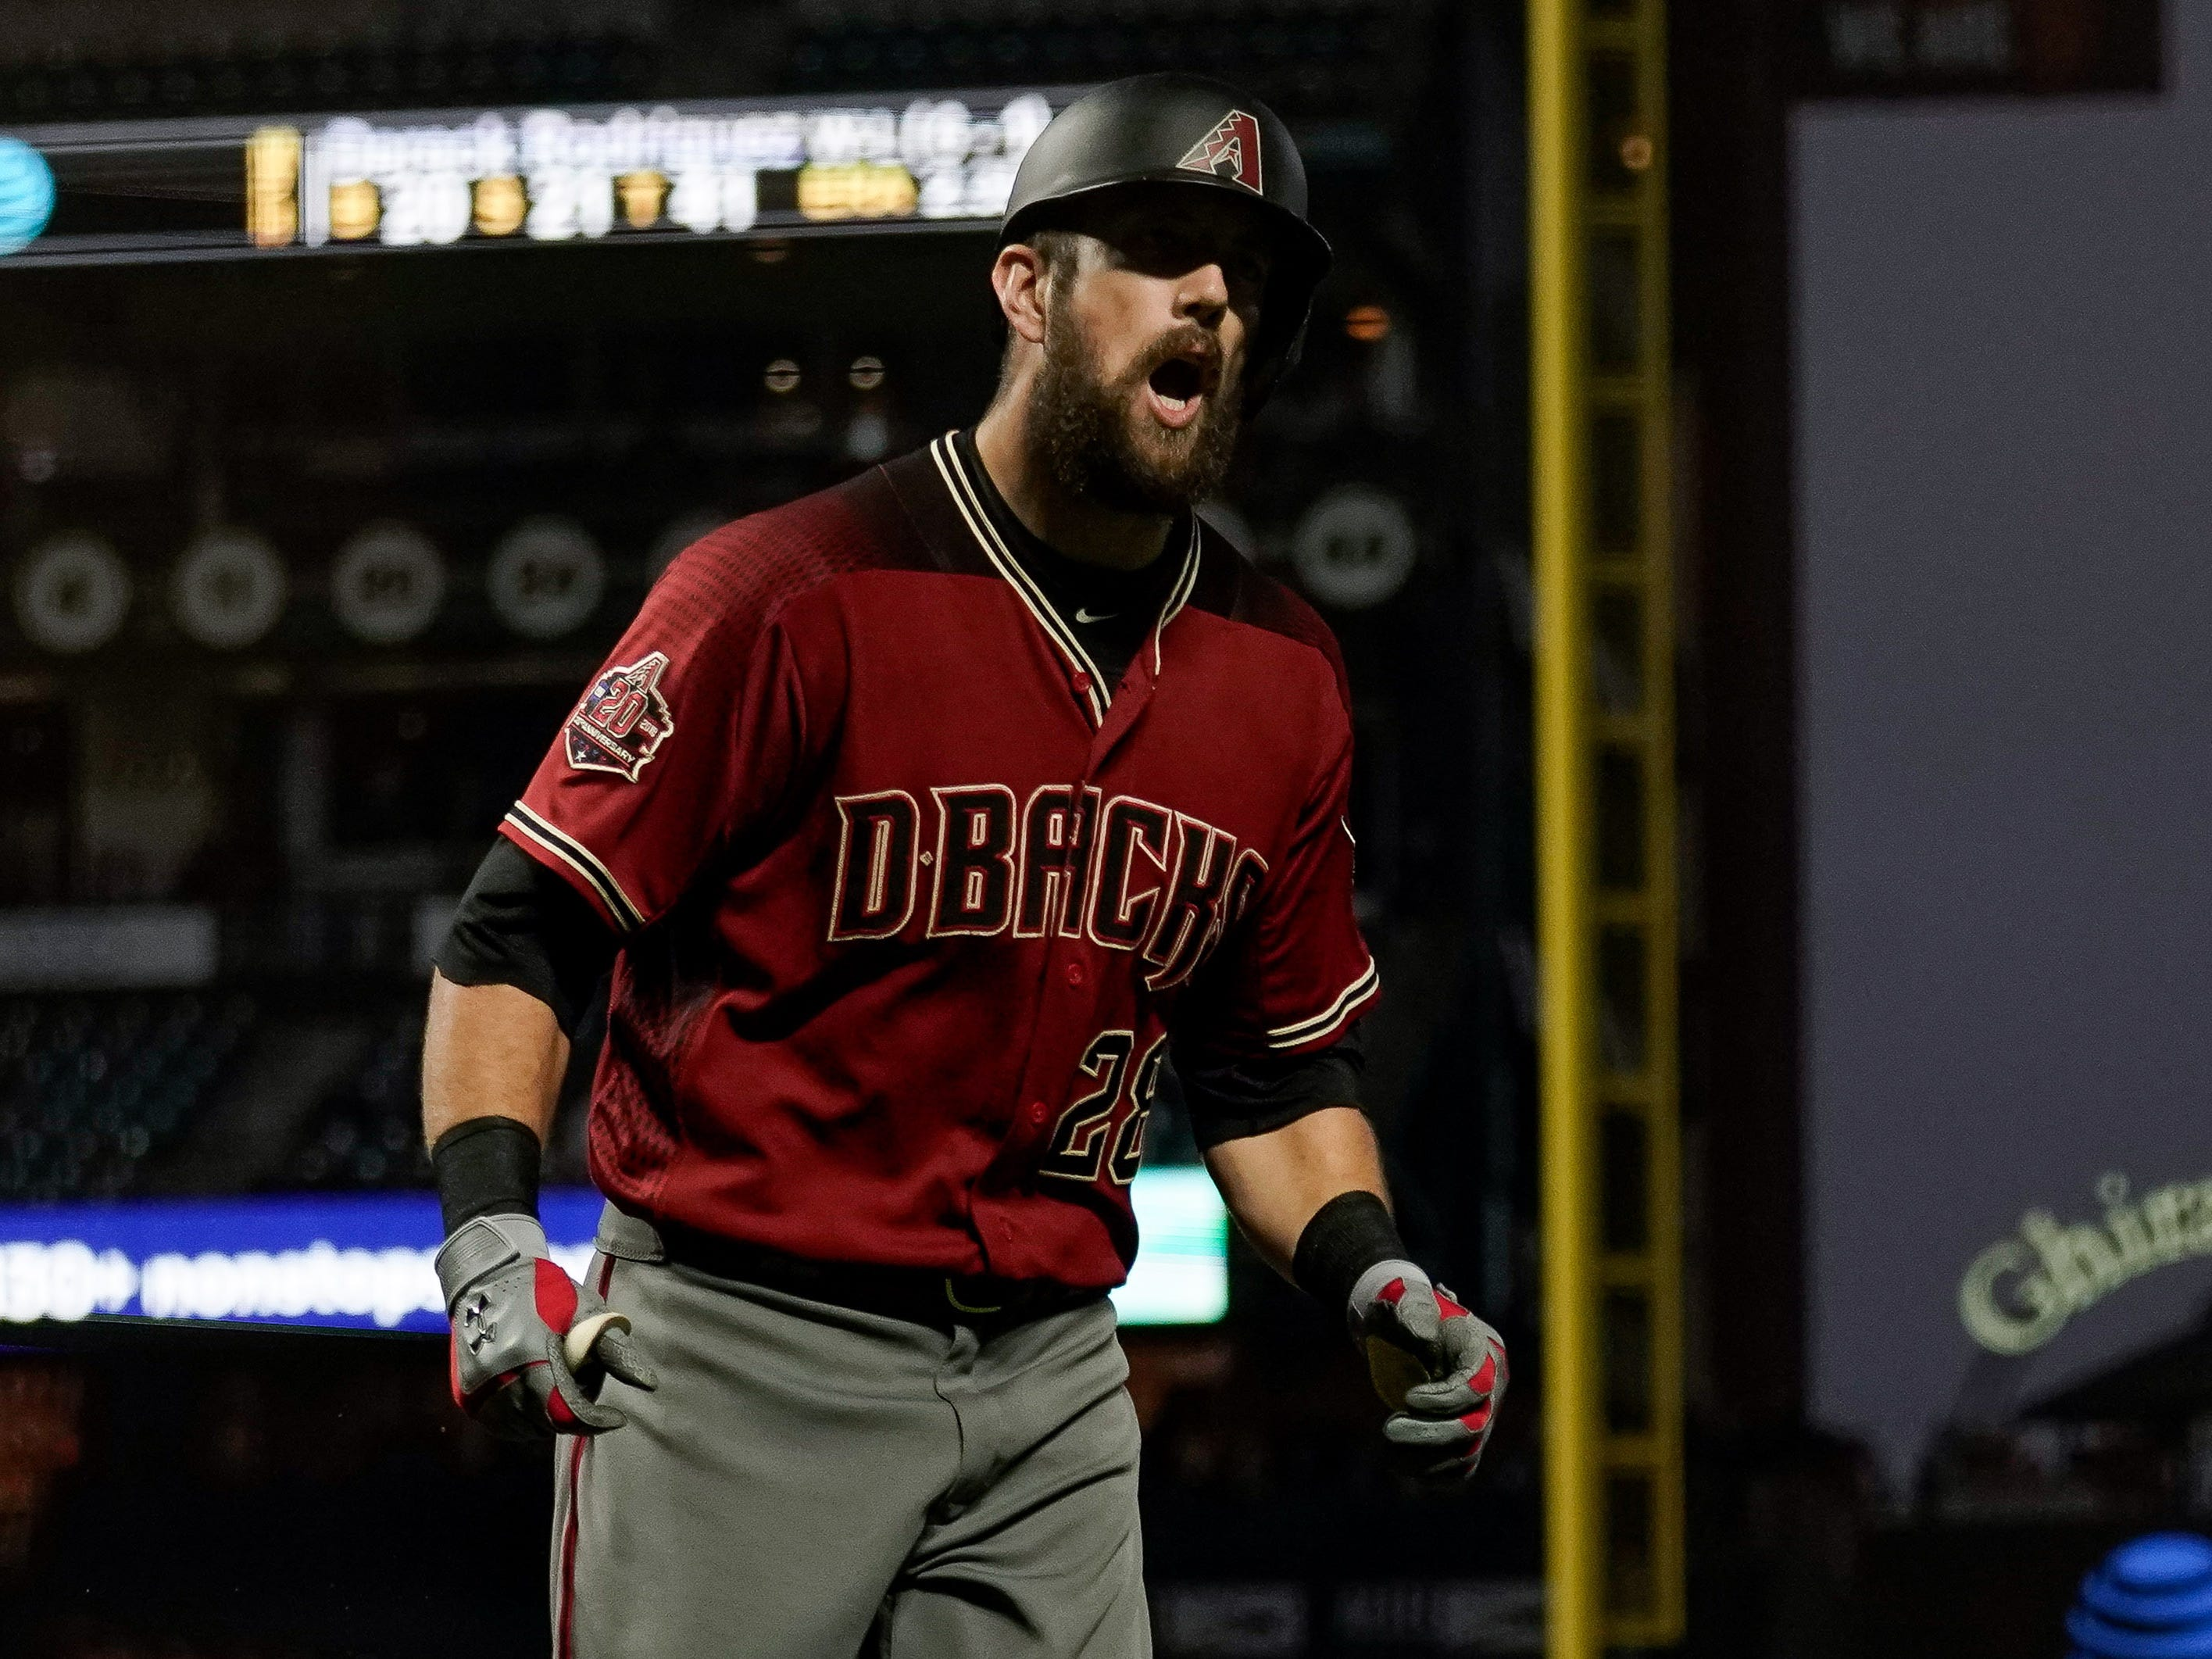 Aug 29, 2018; San Francisco, CA, USA; Arizona Diamondbacks right fielder Steven Souza Jr. (28) reacts after hitting a solo home run against the San Francisco Giants during the third inning at AT&T Park.